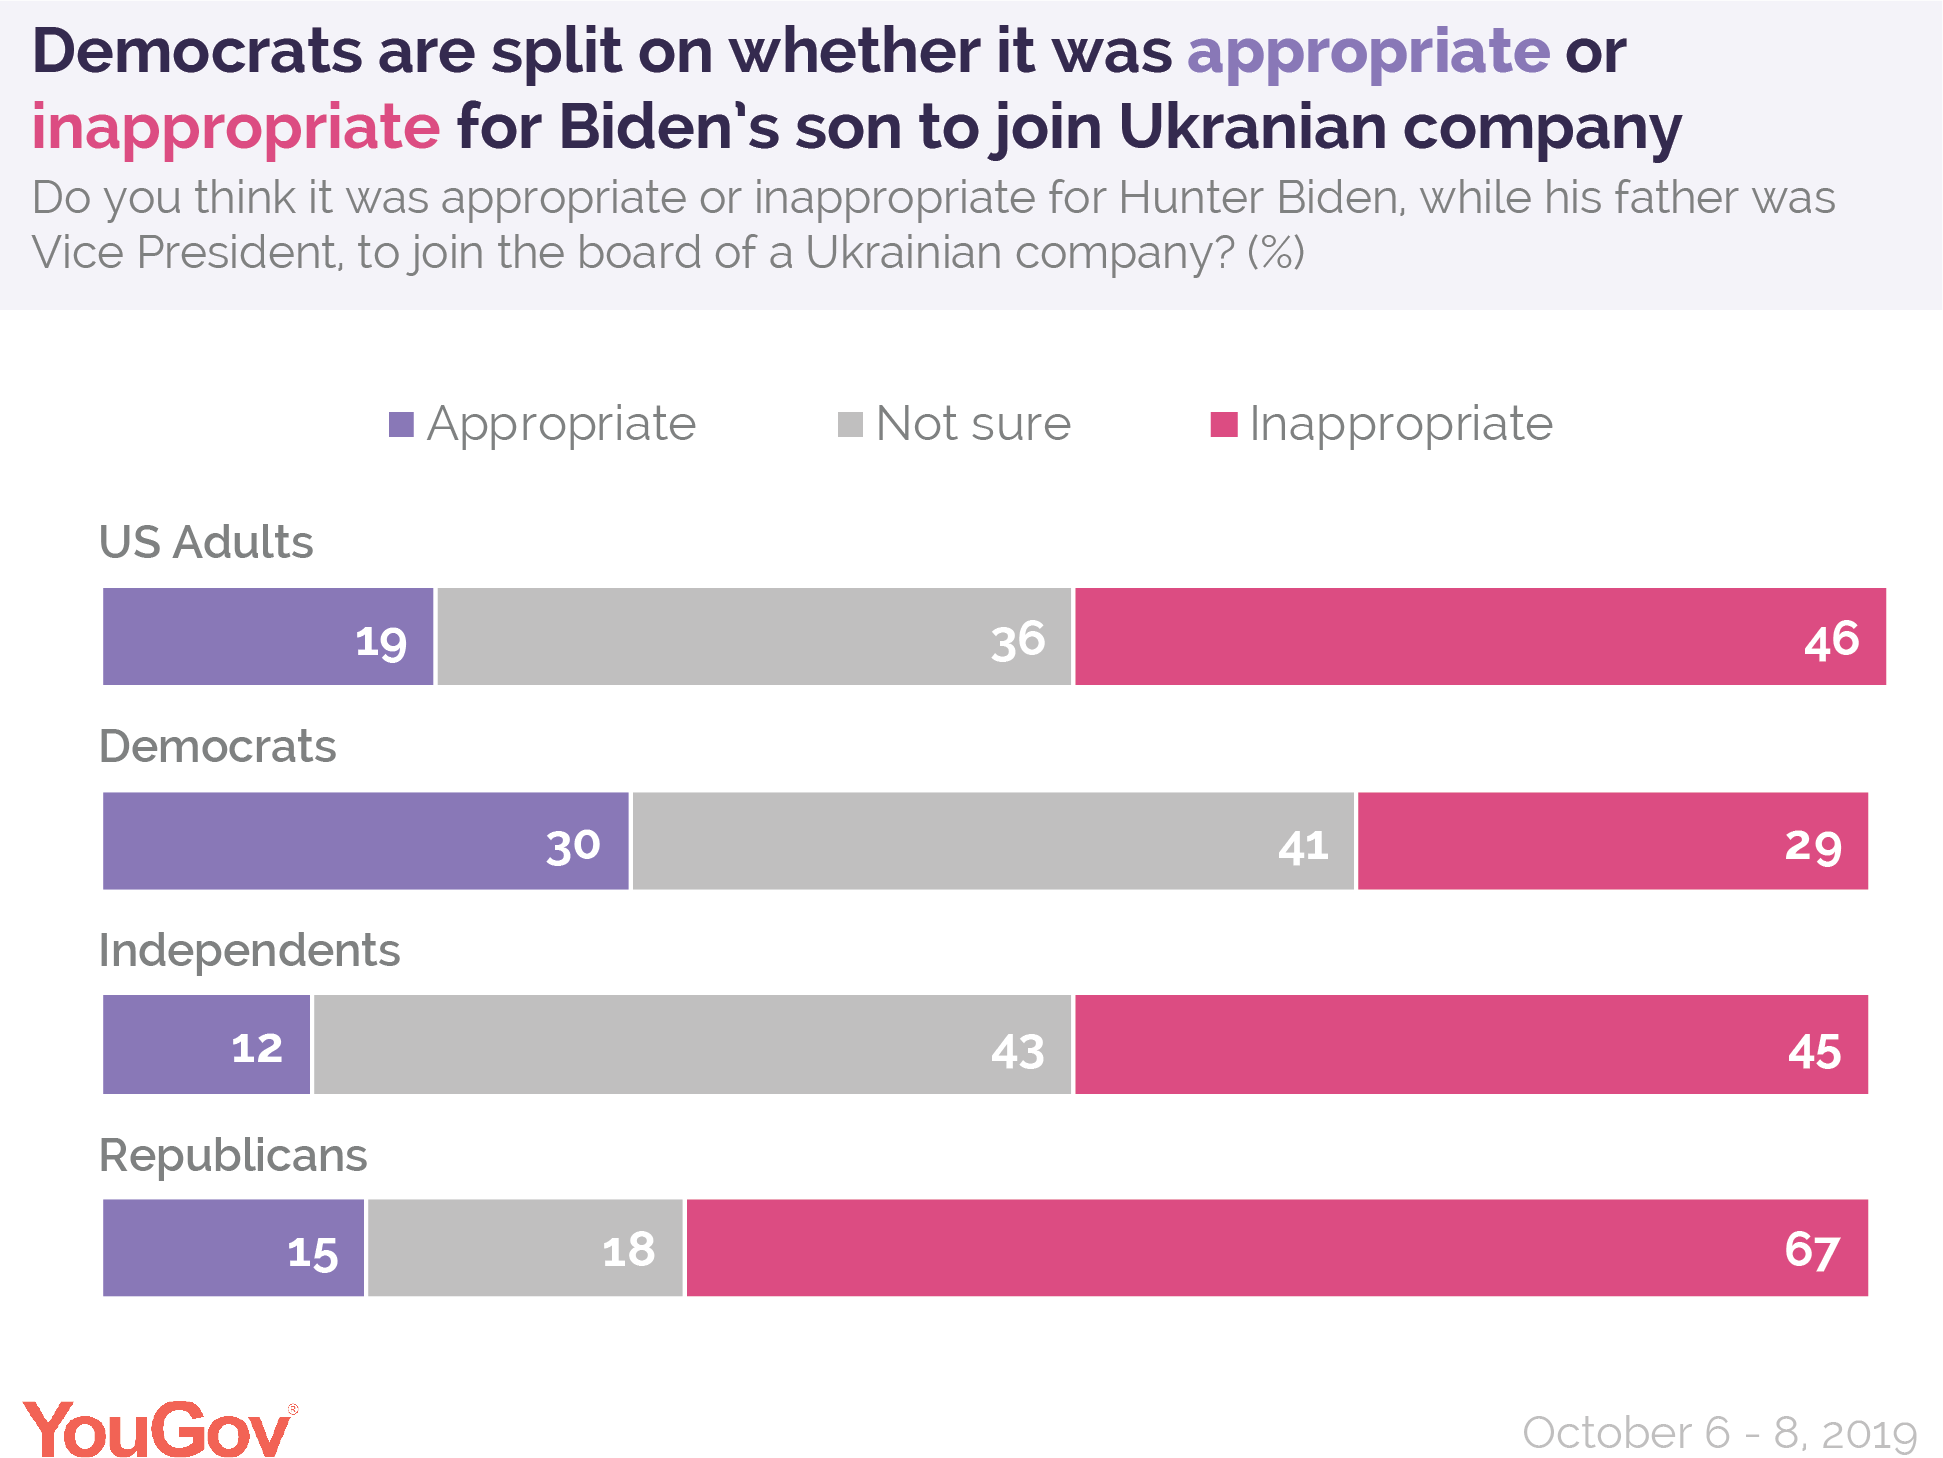 Democrats are split on whether it was appropriate or inappropriate for Biden's son to join